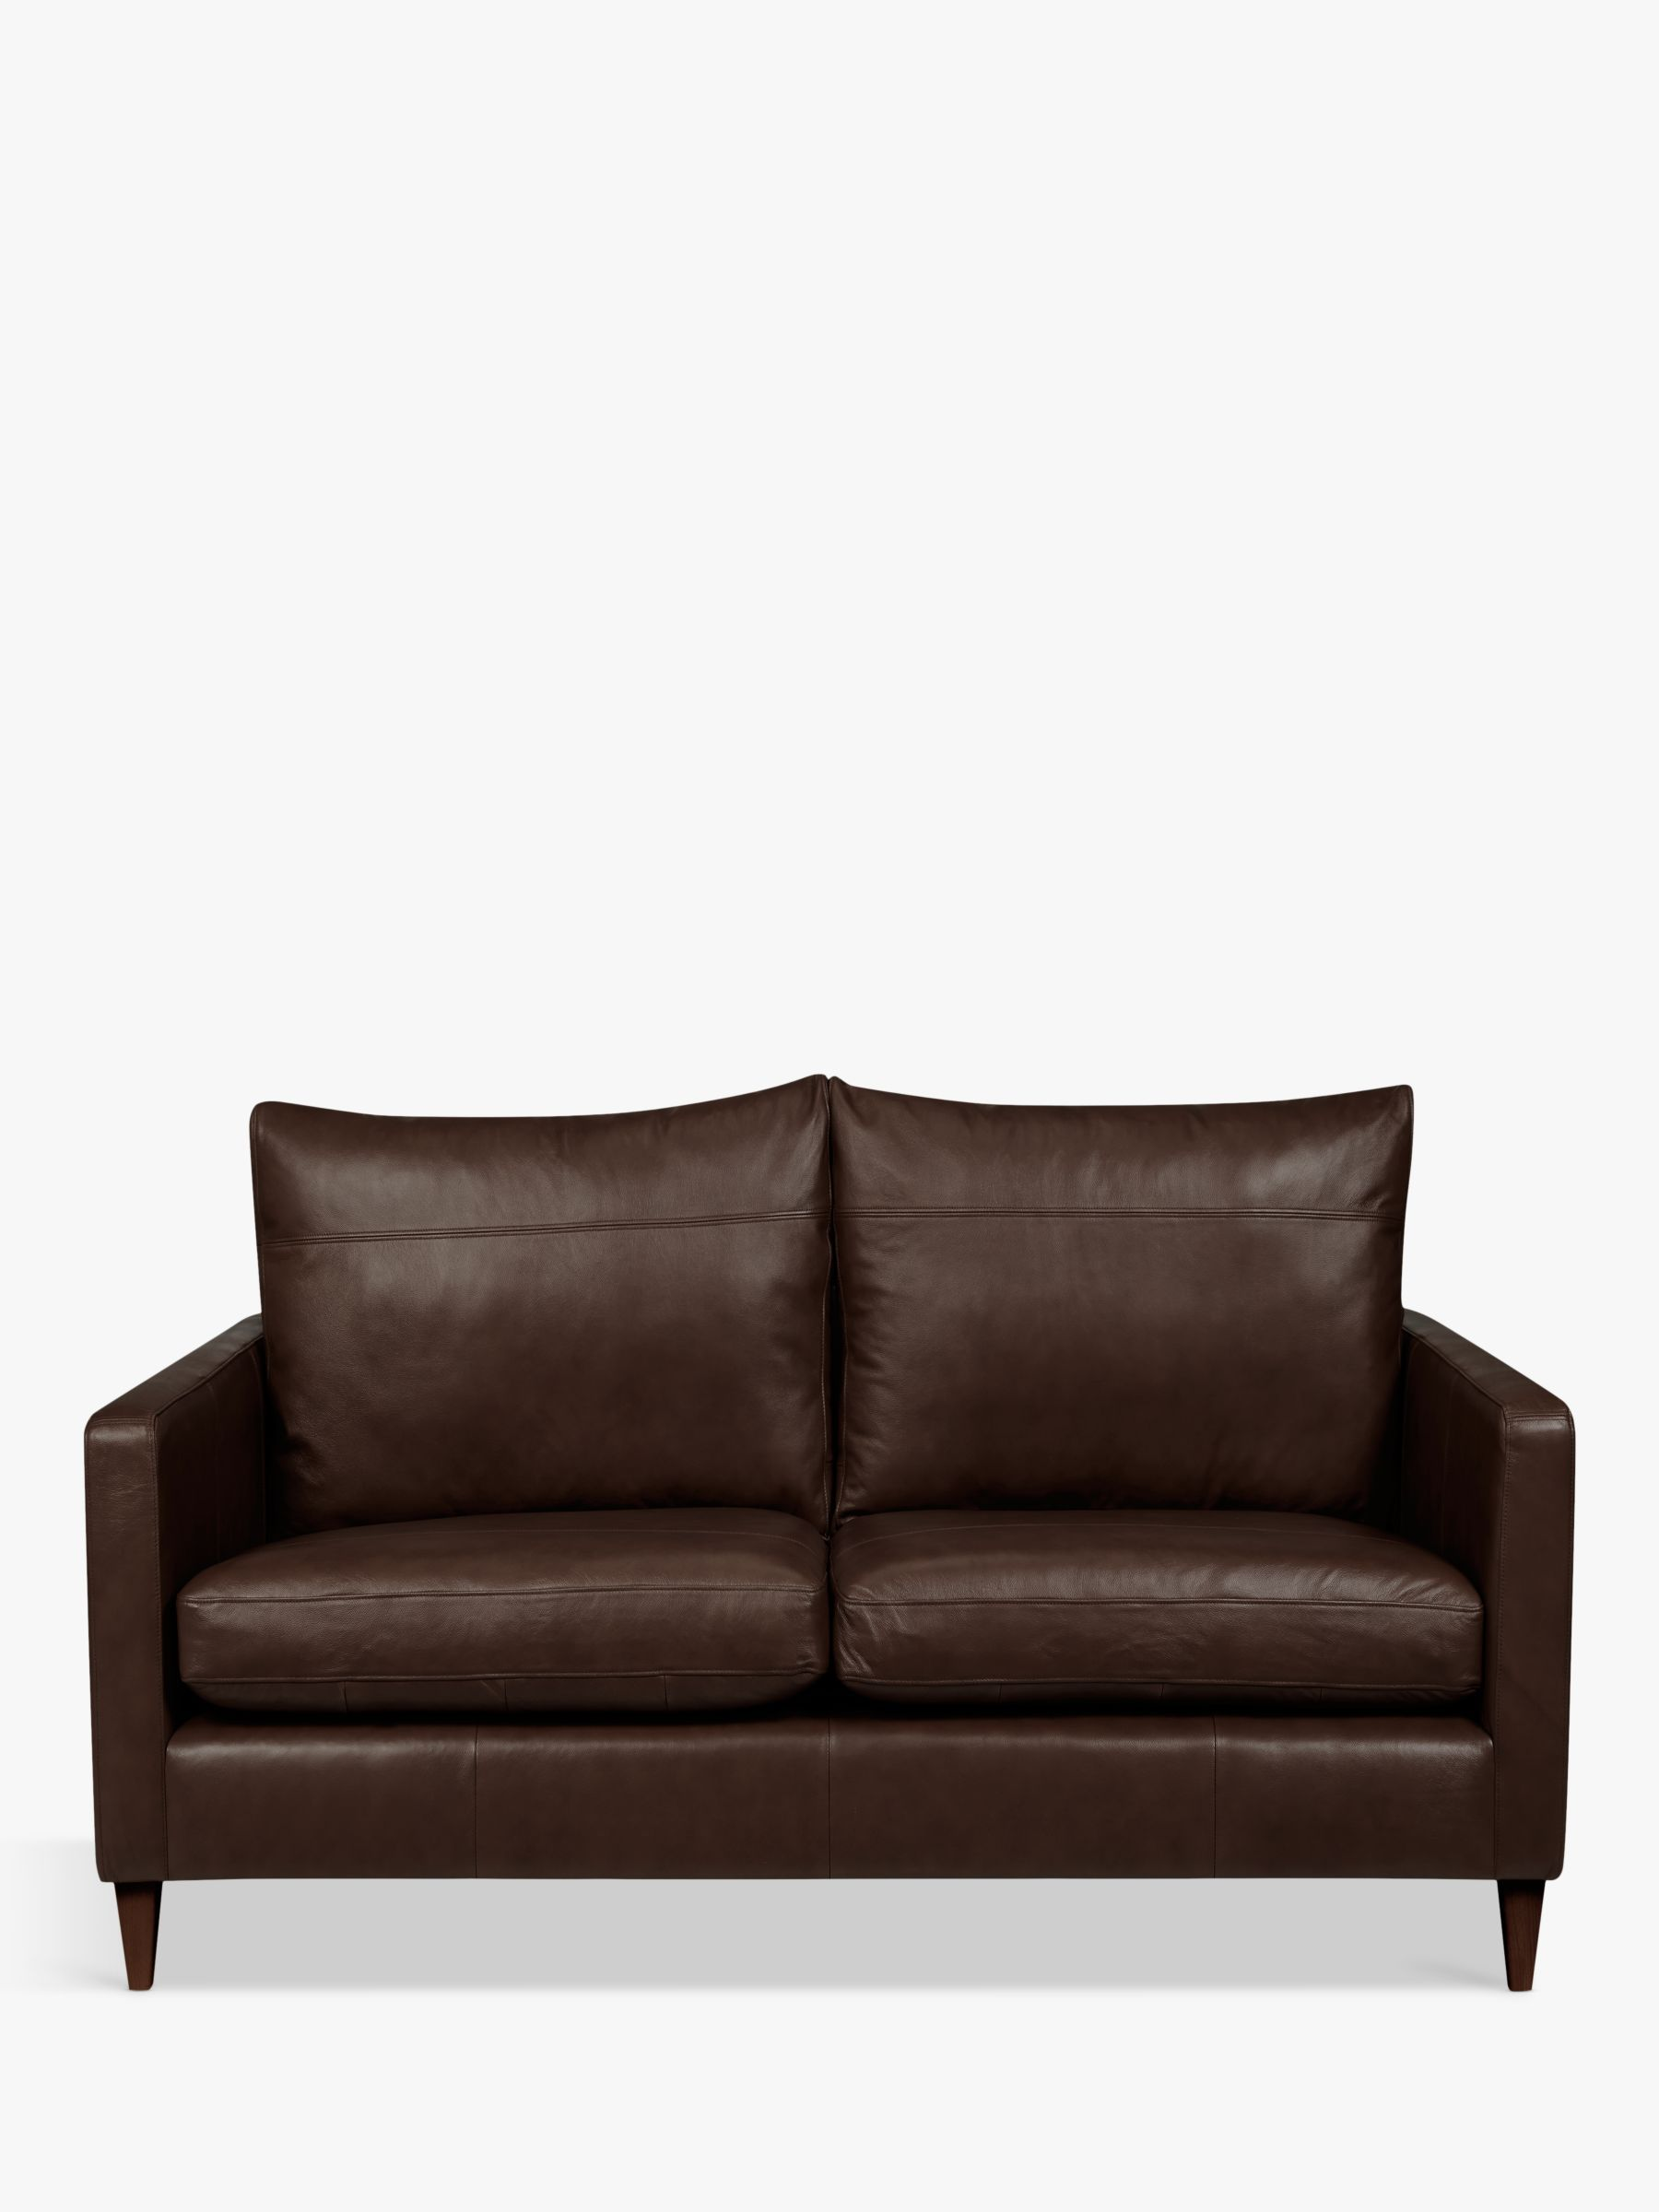 John Lewis Partners Bailey Leather Small 2 Seater Sofa Dark Leg Leather Sofa 2 Seater Sofa Sofa